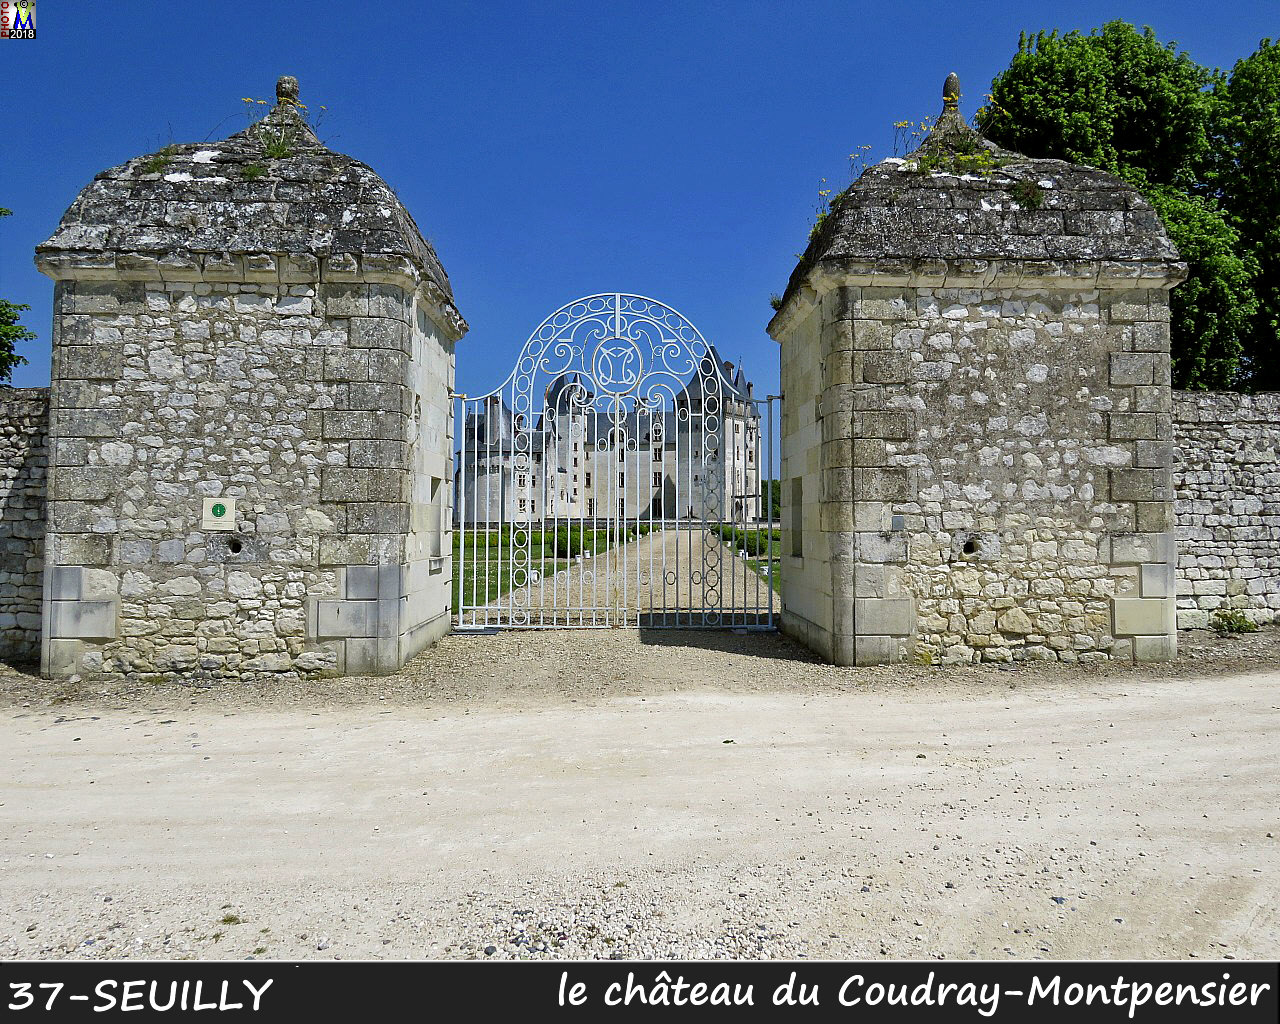 37SEUILLY_chateau_1000.jpg